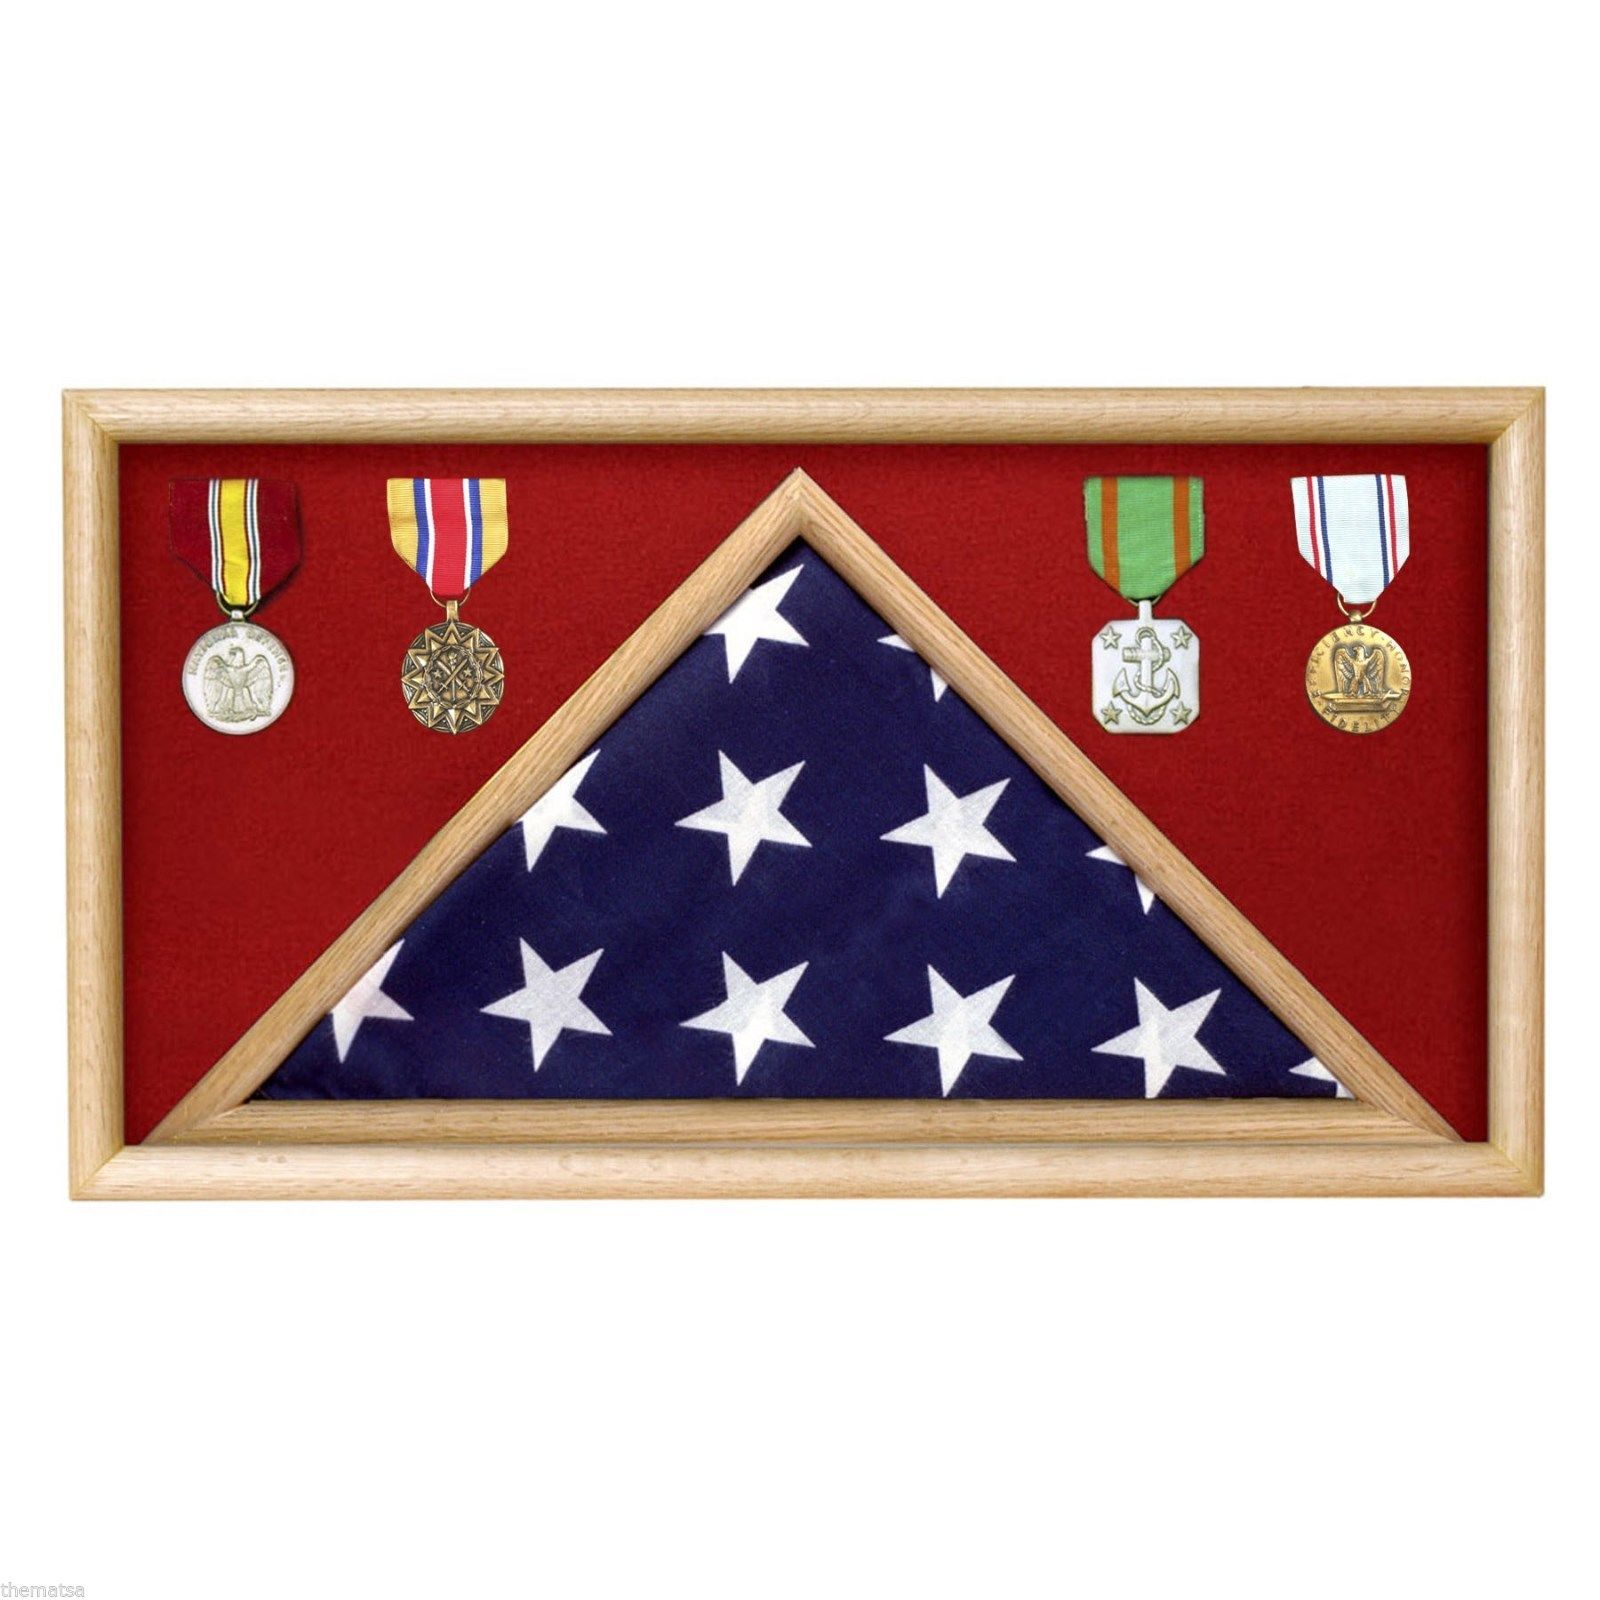 Primary image for USA MADE SOLID OAK WOOD MILITARY FLAG RECTANGLE  DISPLAY CASE SHADOW BOX